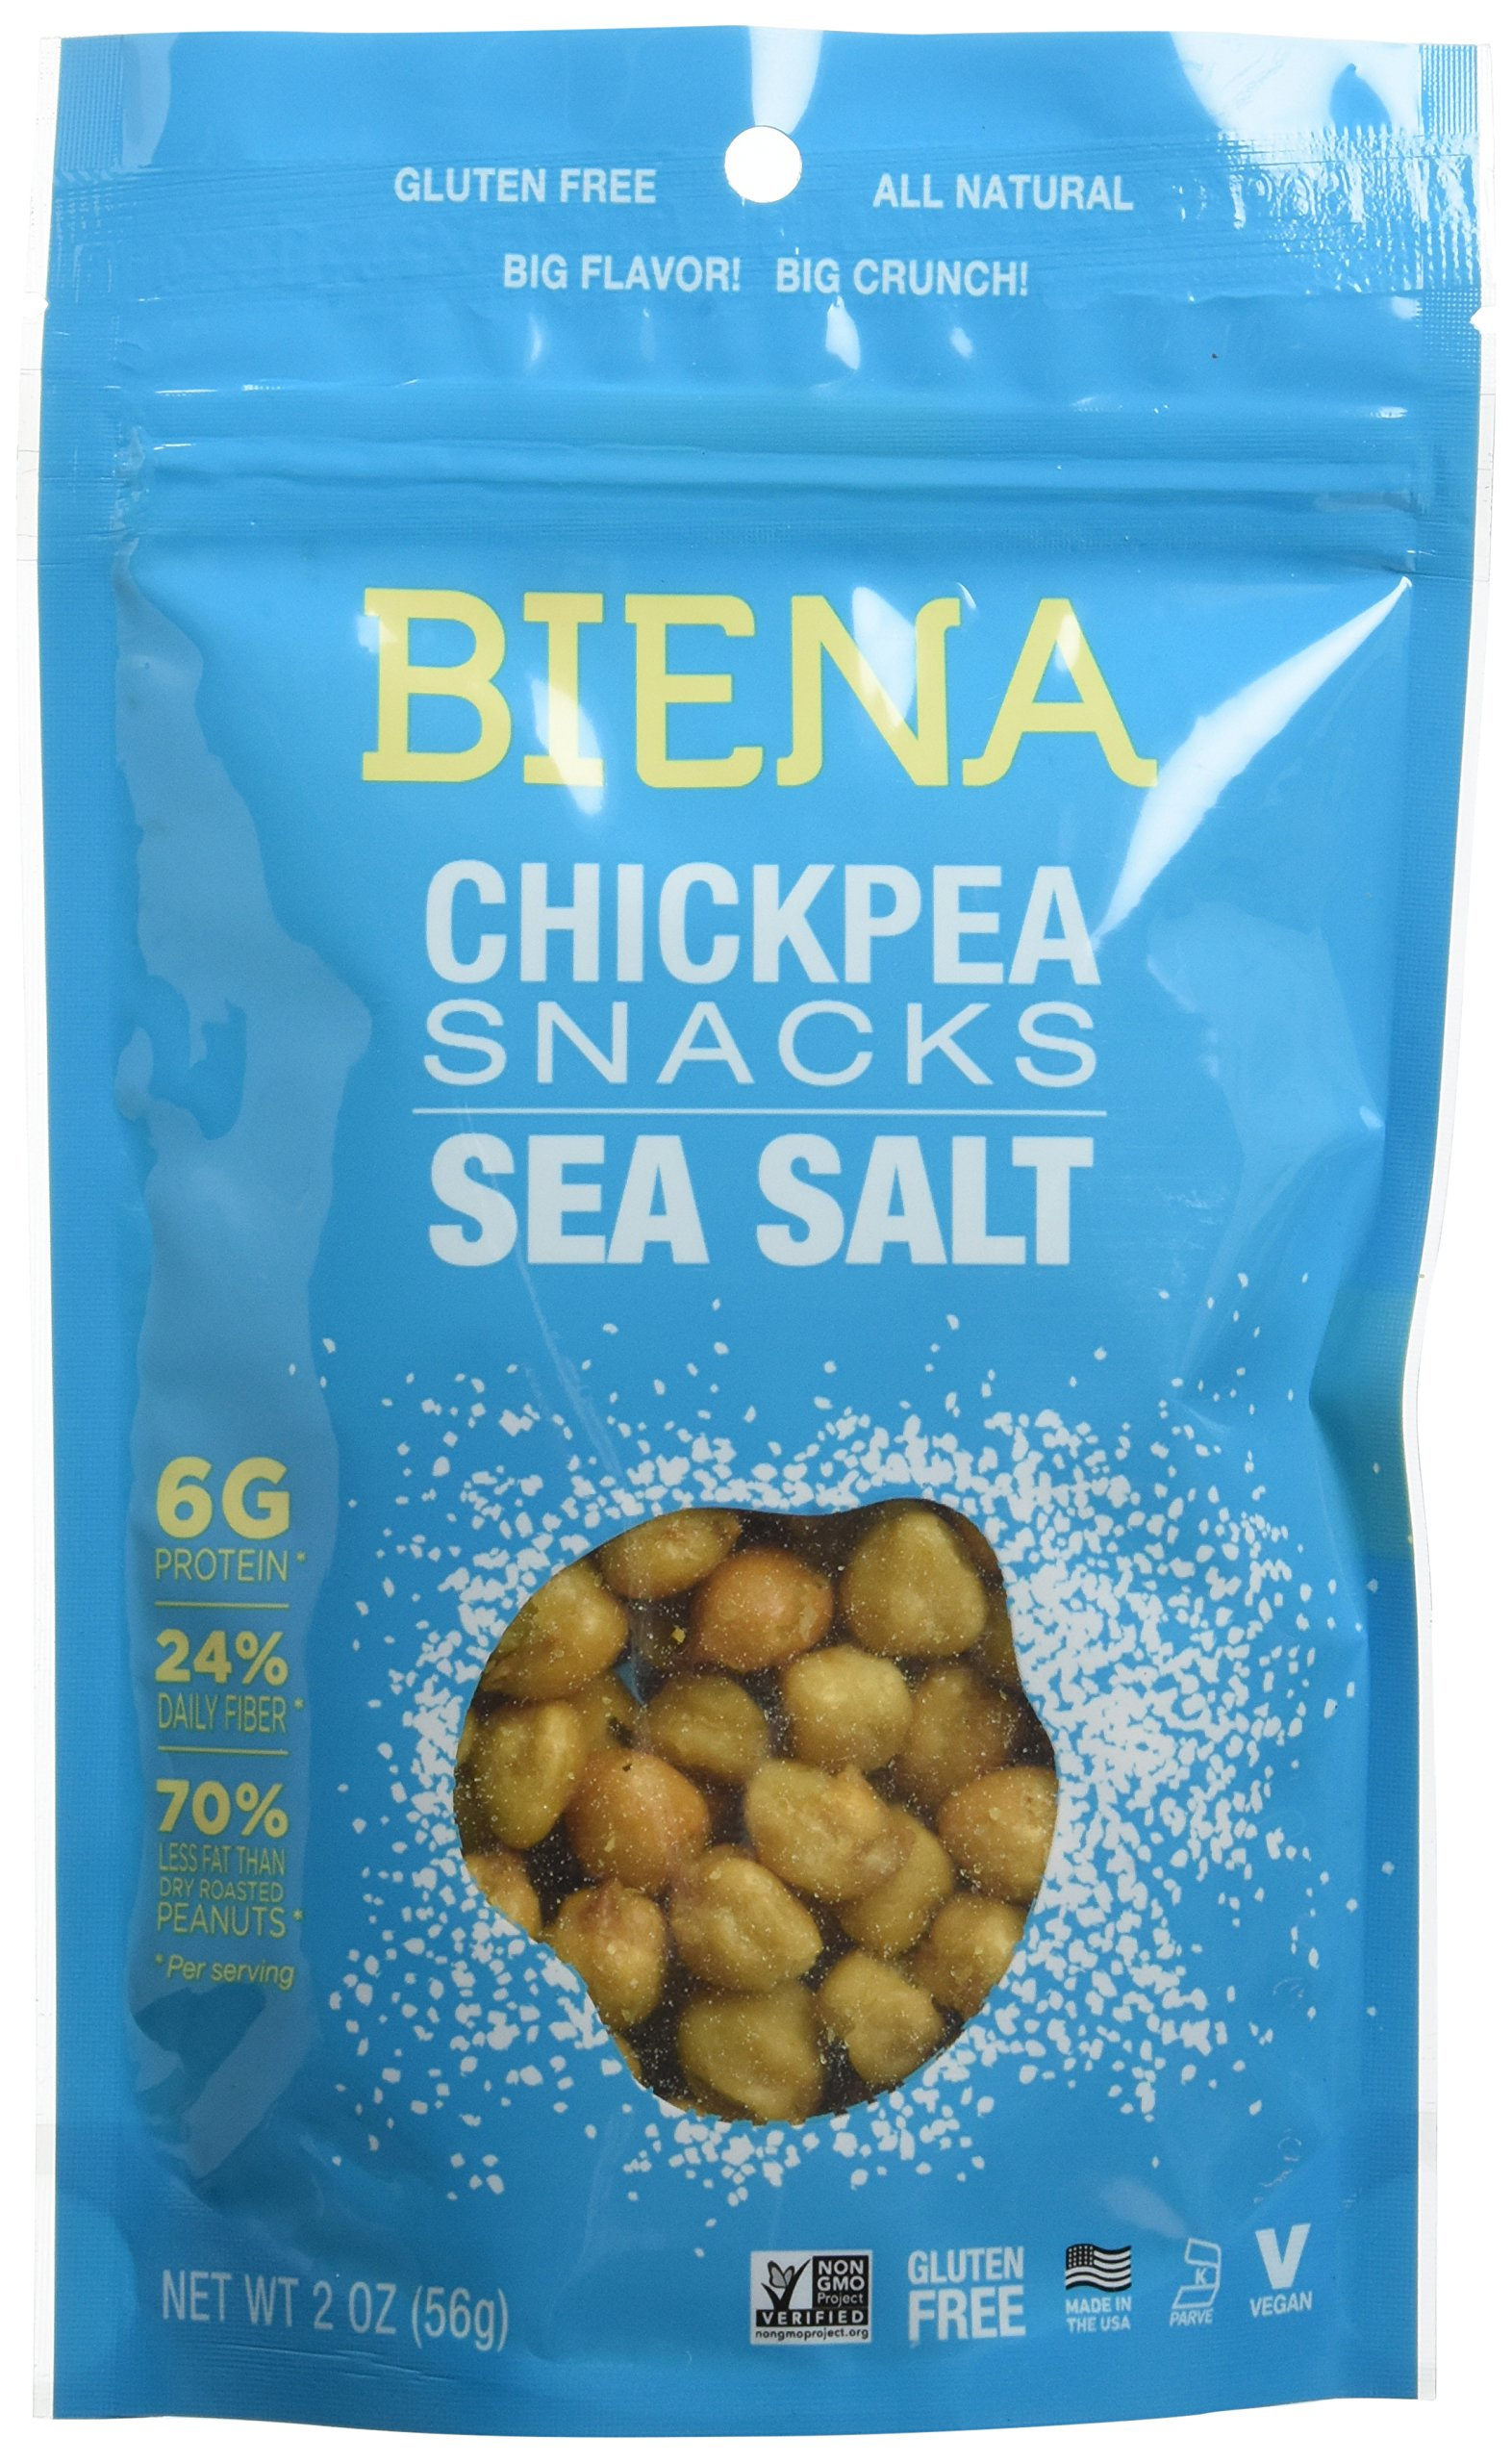 Biena All Natural Roasted Chickpeas Snacks Case of 12 - 2 oz bags (Sea Salt) by Biena